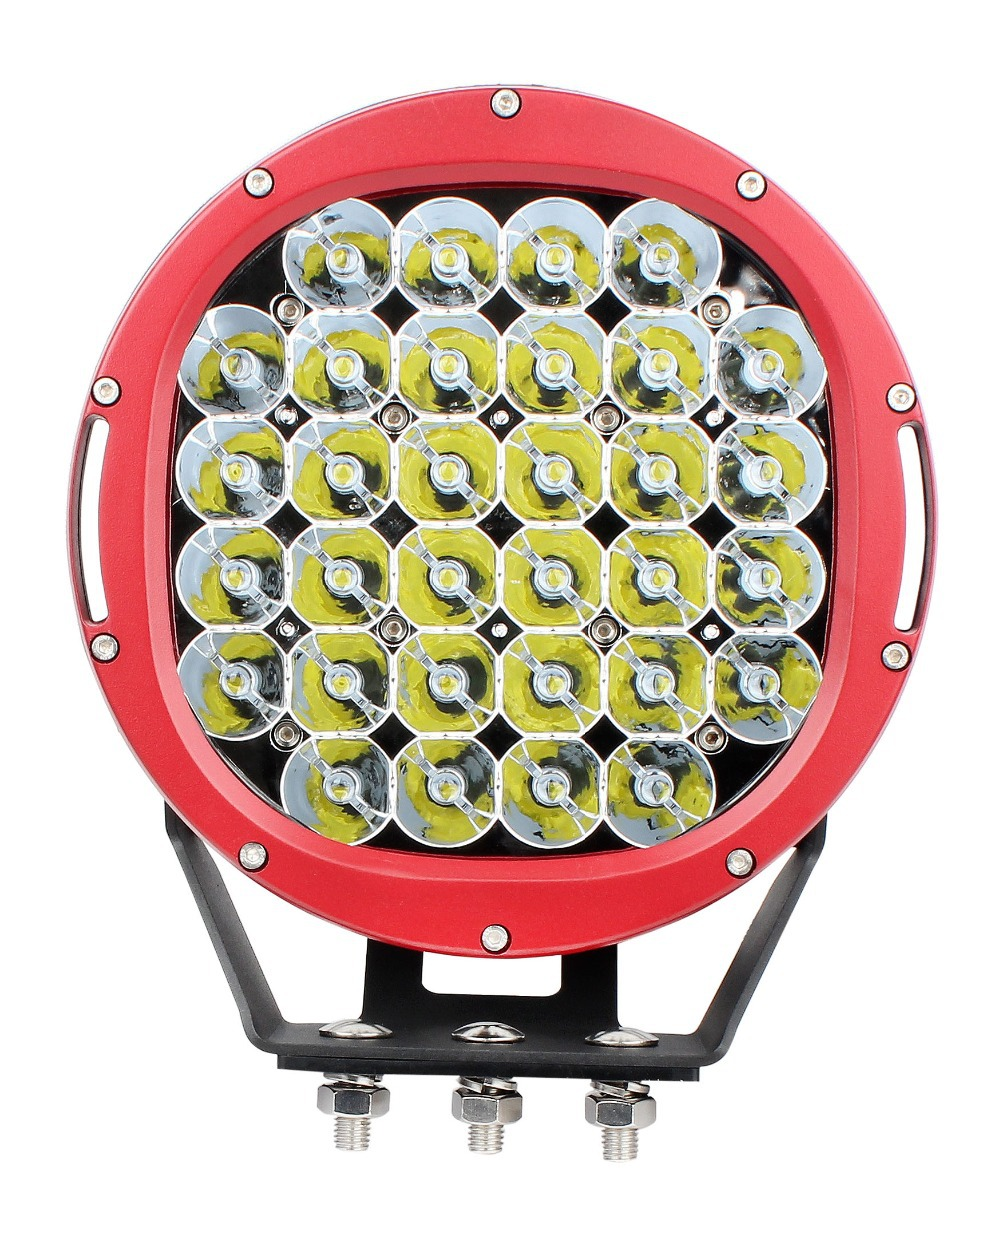 8inch CREE LED work light 96W with Spot and flood mask 12V 24V 4WD ATV SUV offroad Car Tractor Boat truck driving Fog light<br><br>Aliexpress